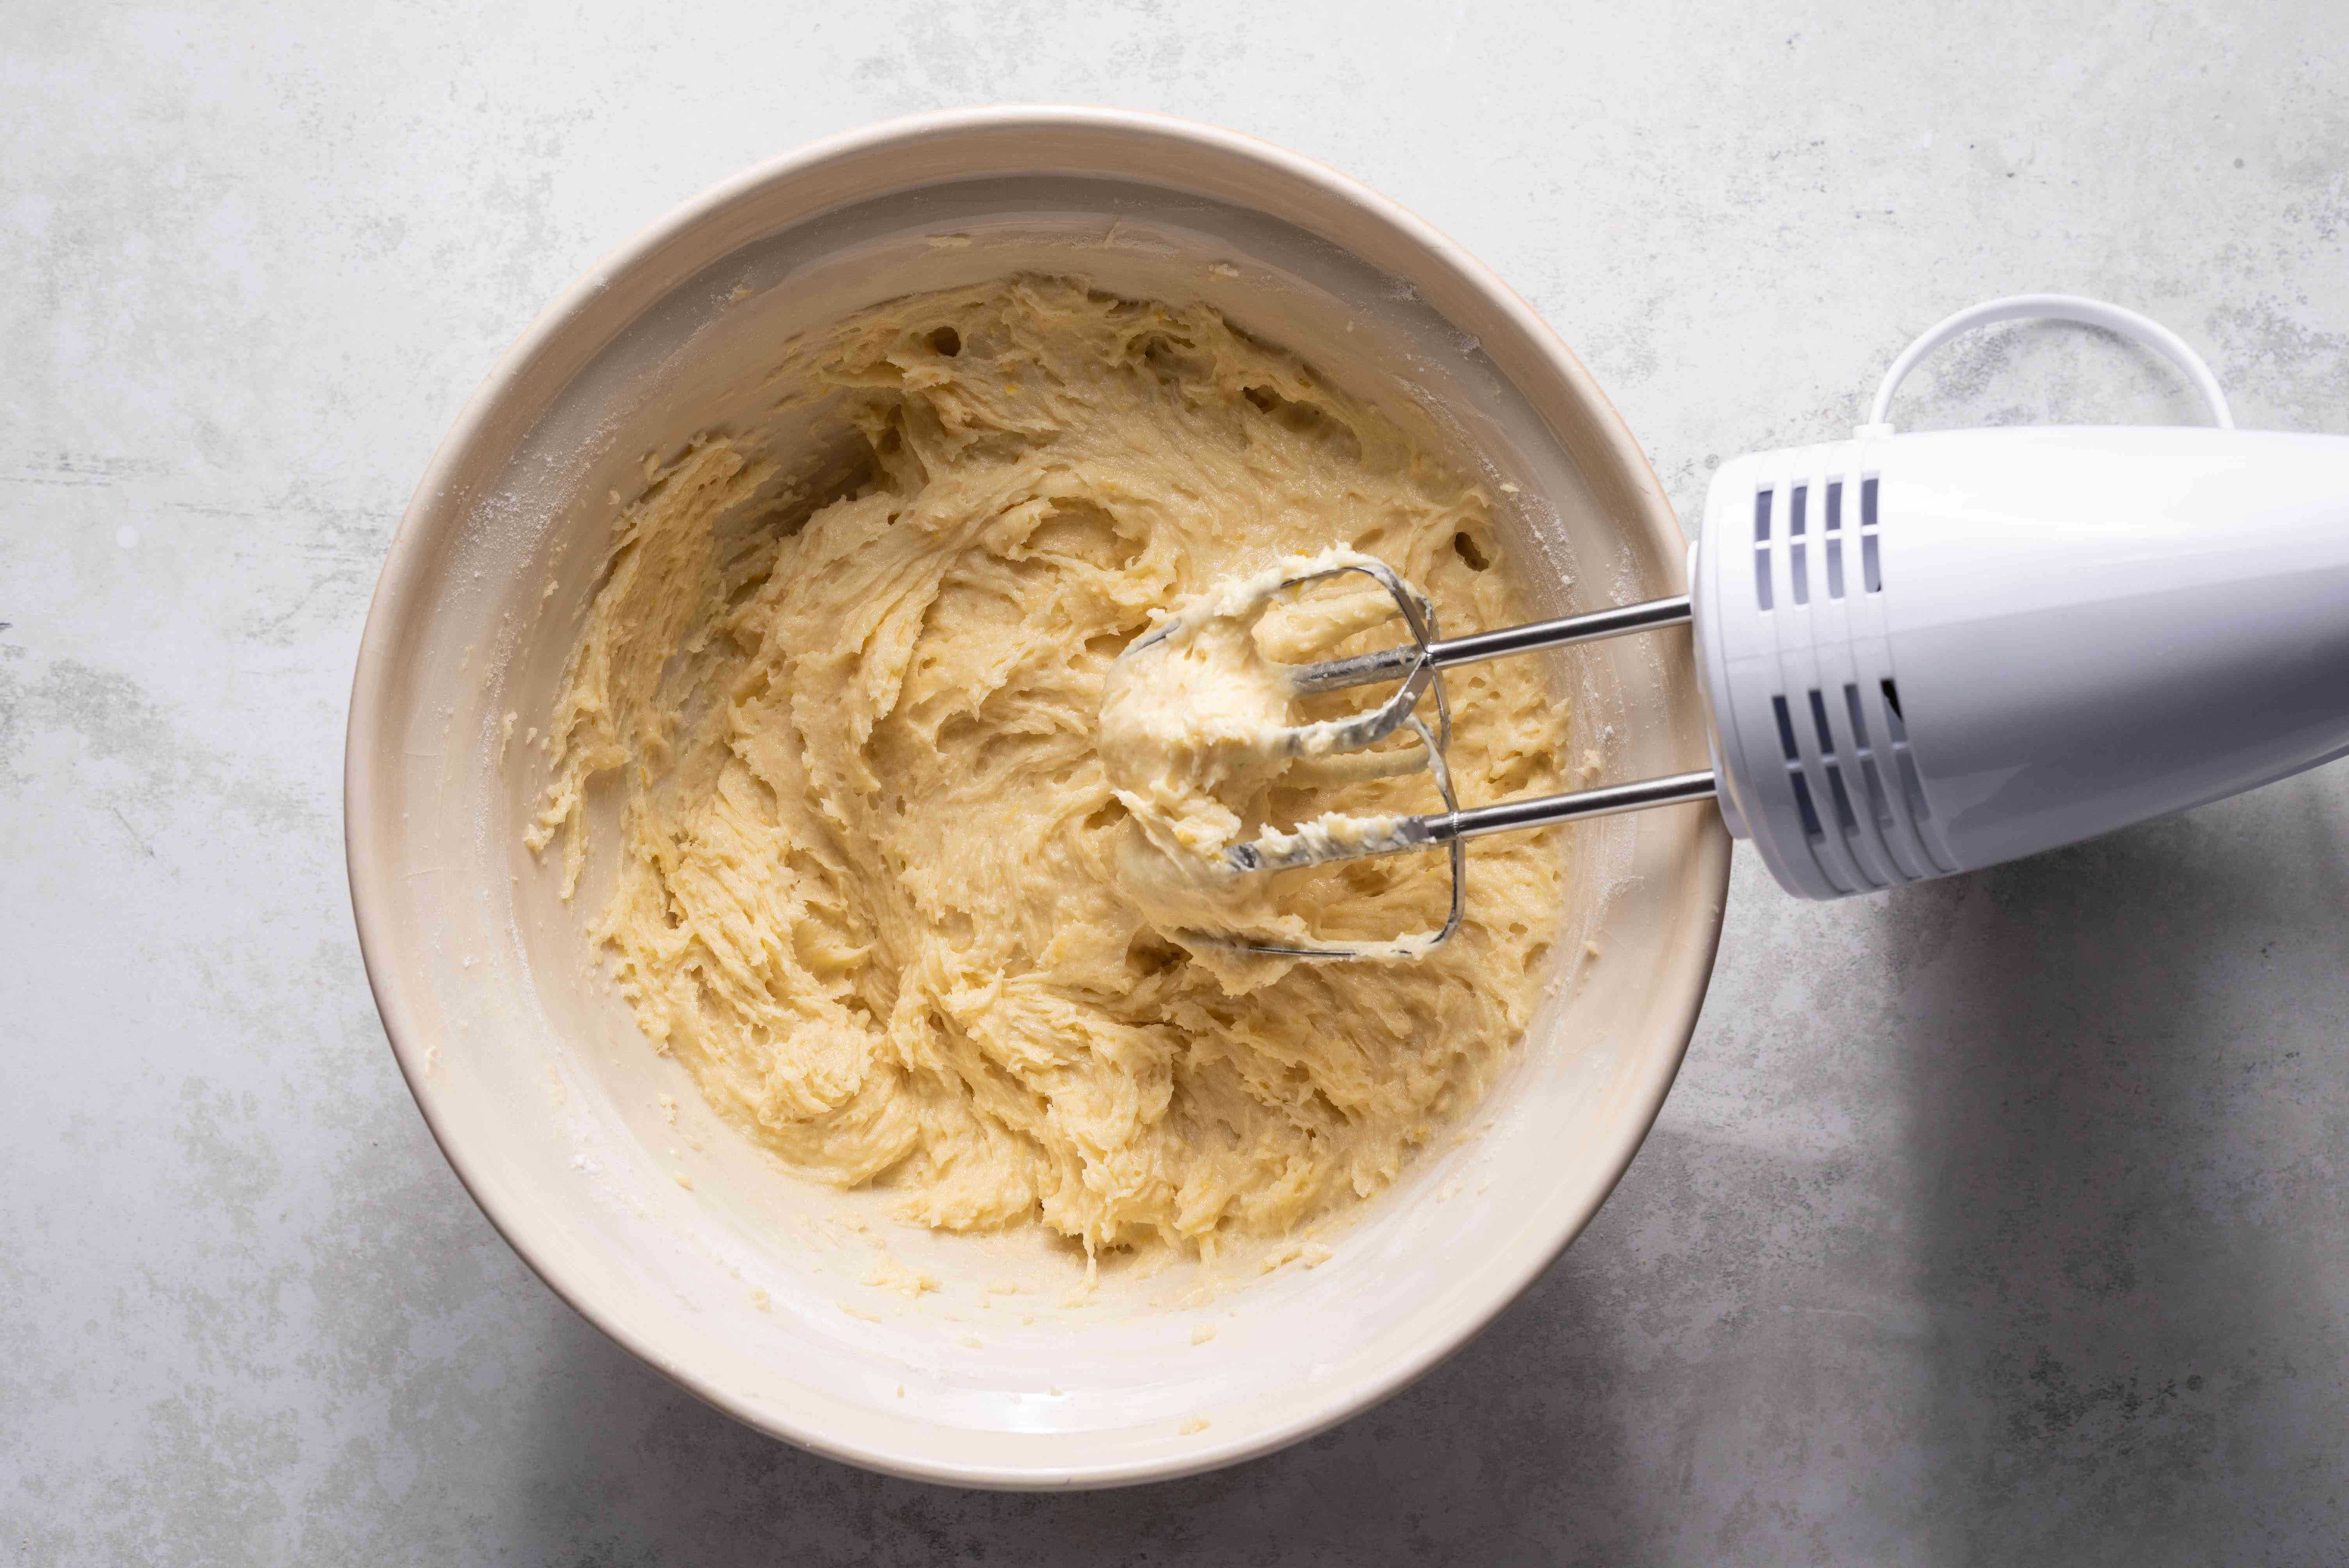 cookie batter in a bowl, hand mixer